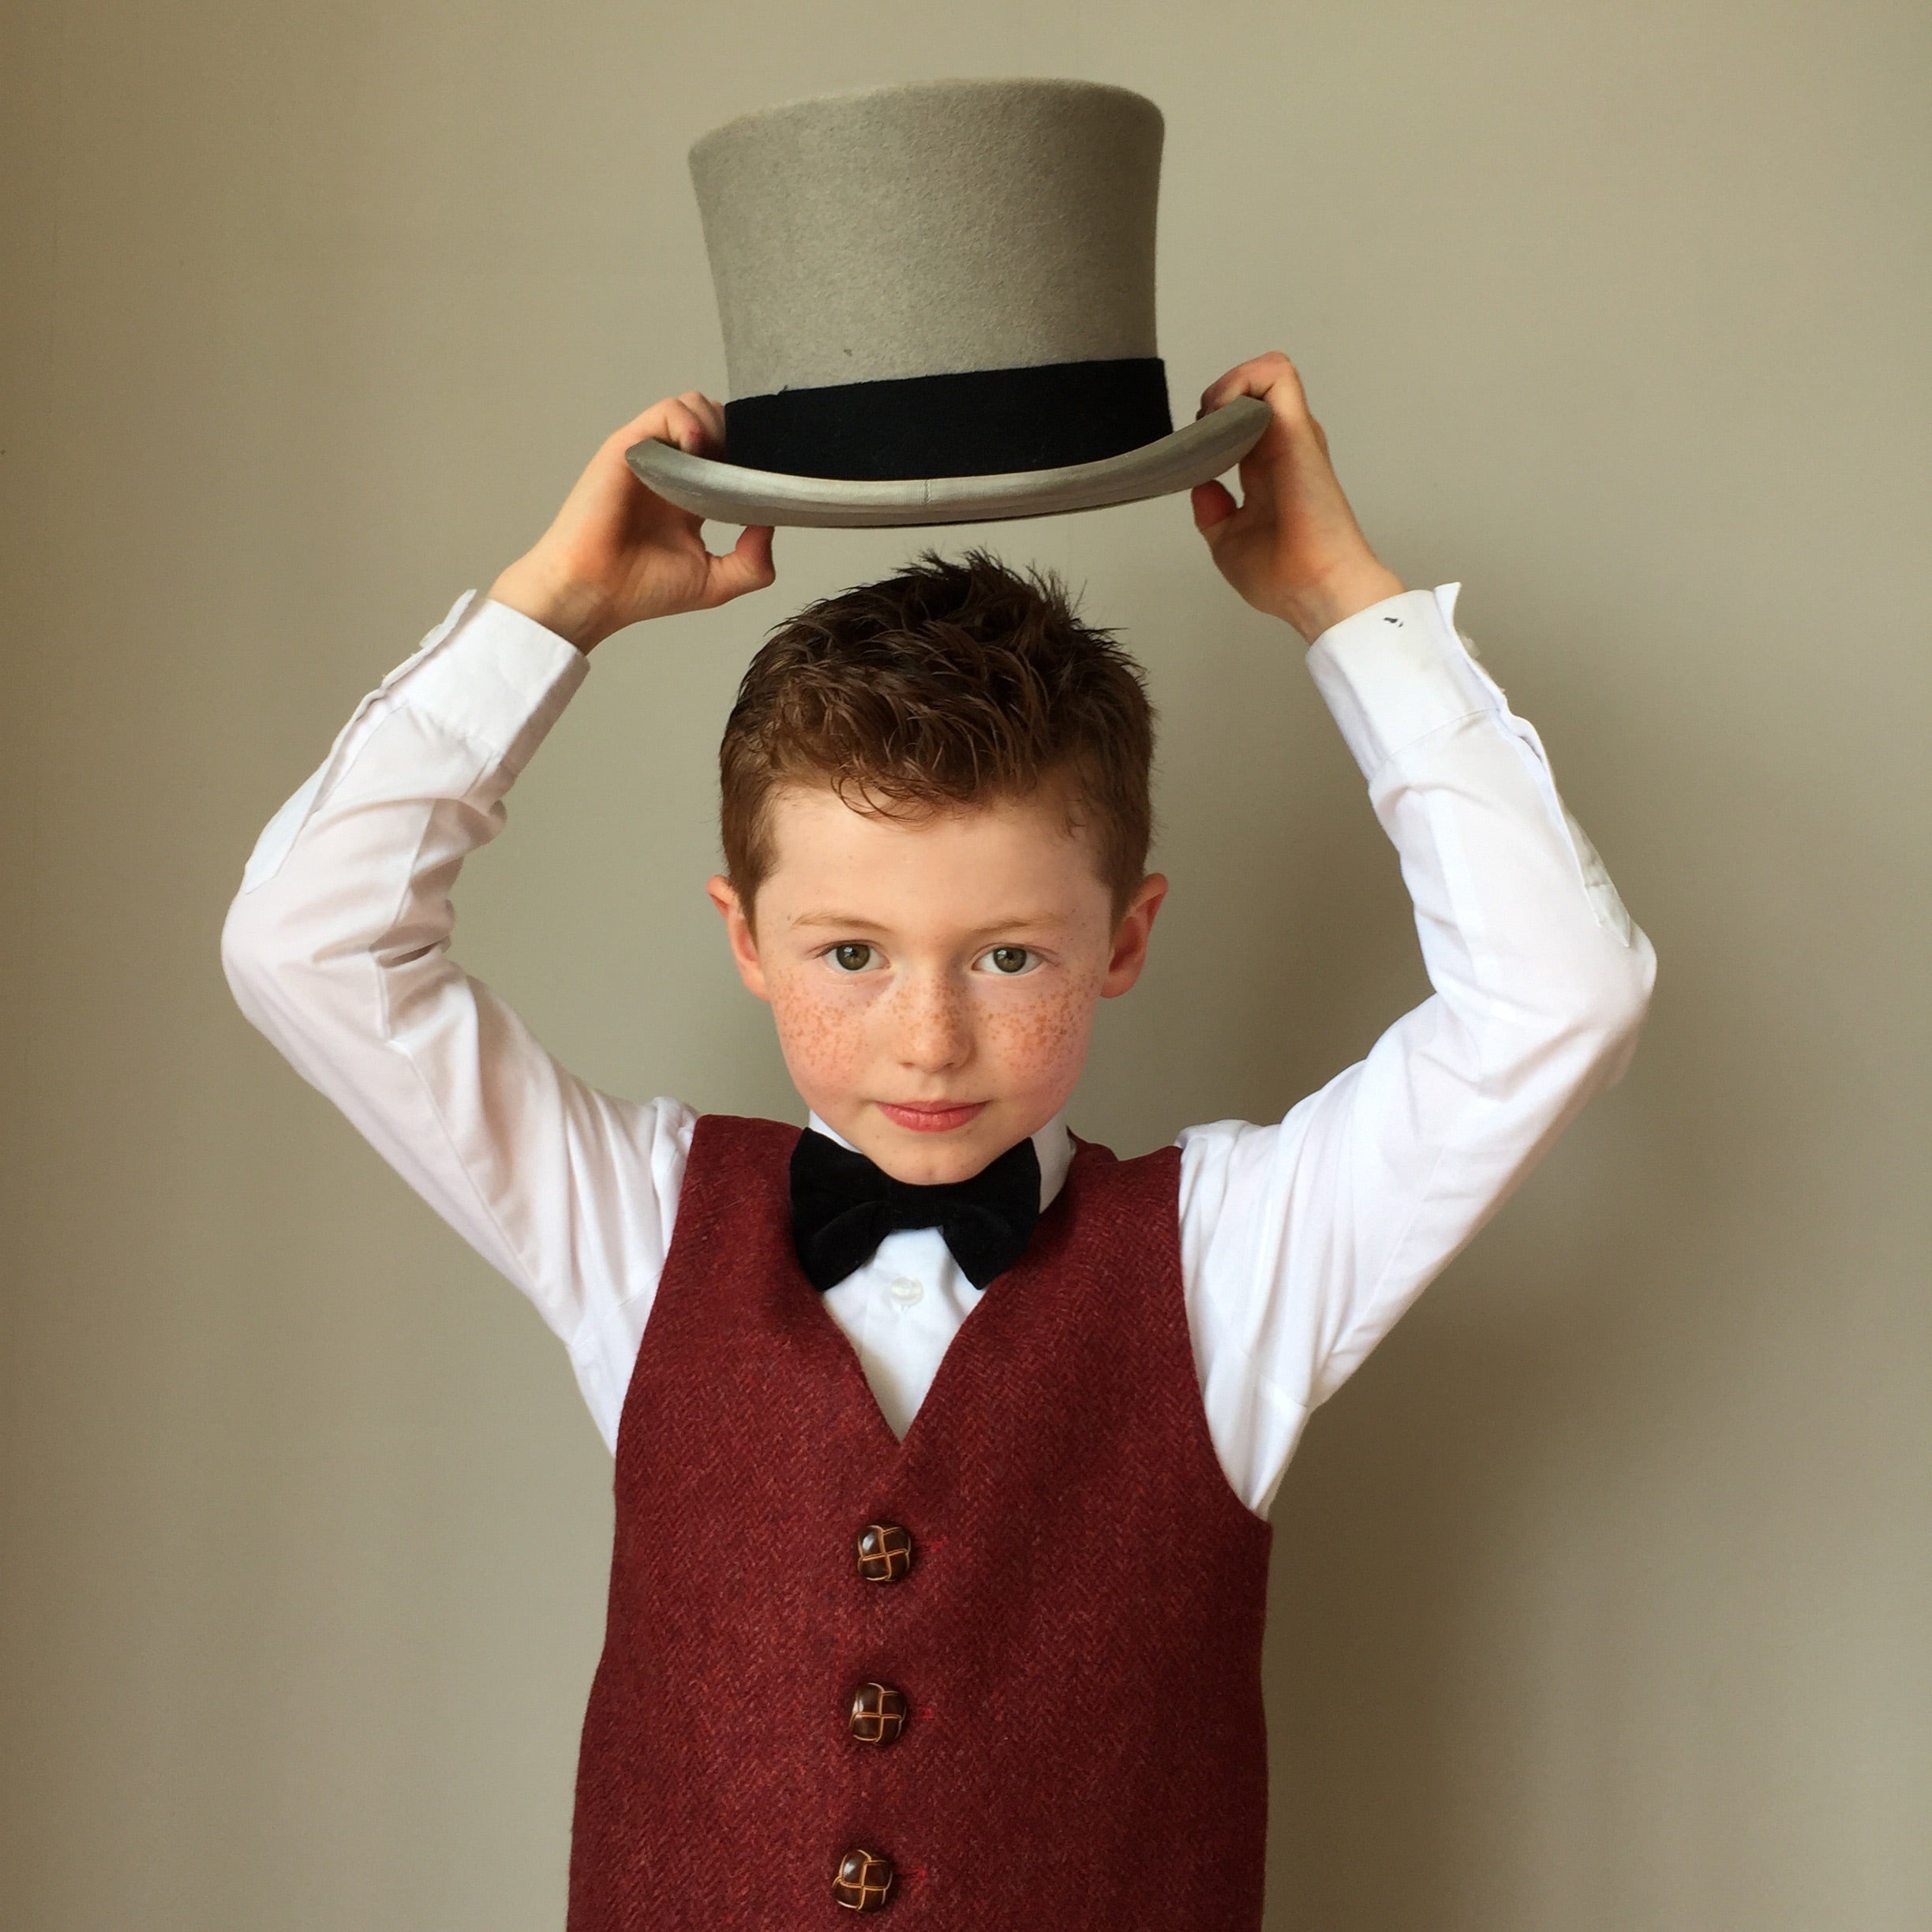 'Hugo' Boys waistcoat handmade in a rich luxurious British red Tweed